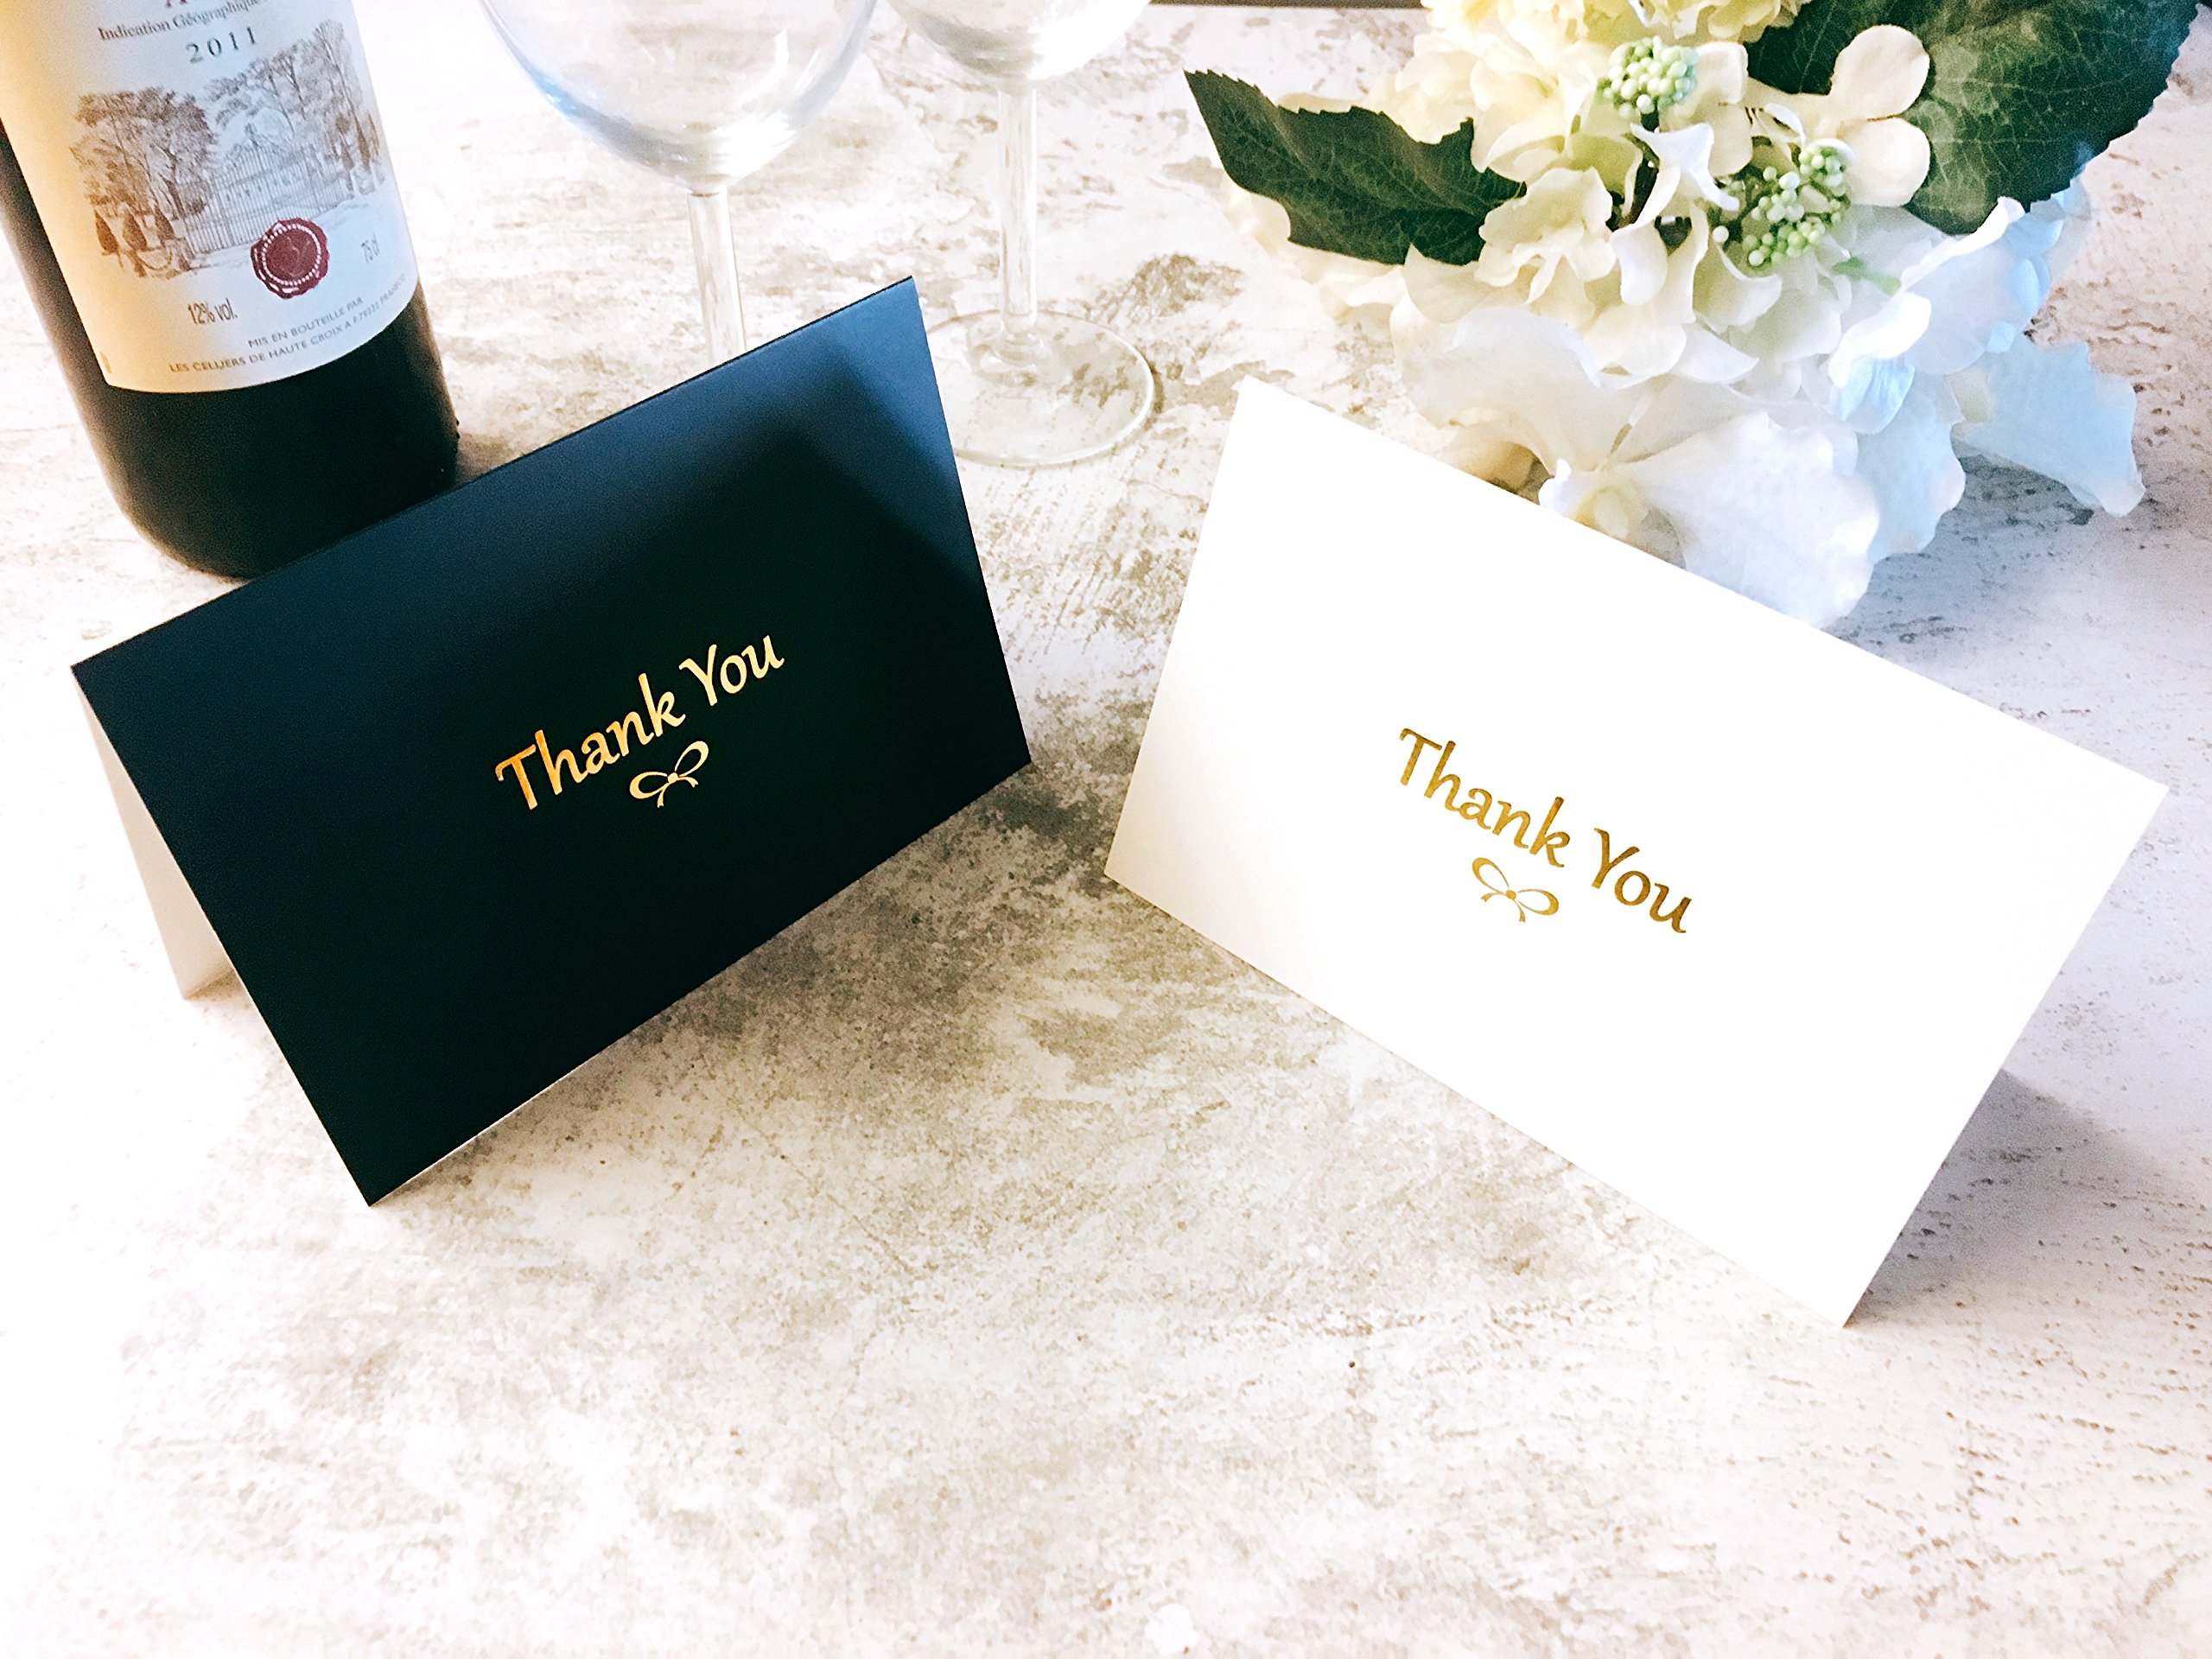 100 Thank You Cards With Gold Foil Embossed Designs | 4 x 6 Inches, Bulk Blank Note Cards With Envelopes And Gold Stickers | Perfect For Wedding, Bridal Shower, Baby Shower, and Business (Black White) by Winoo Paper Greetings (Image #1)